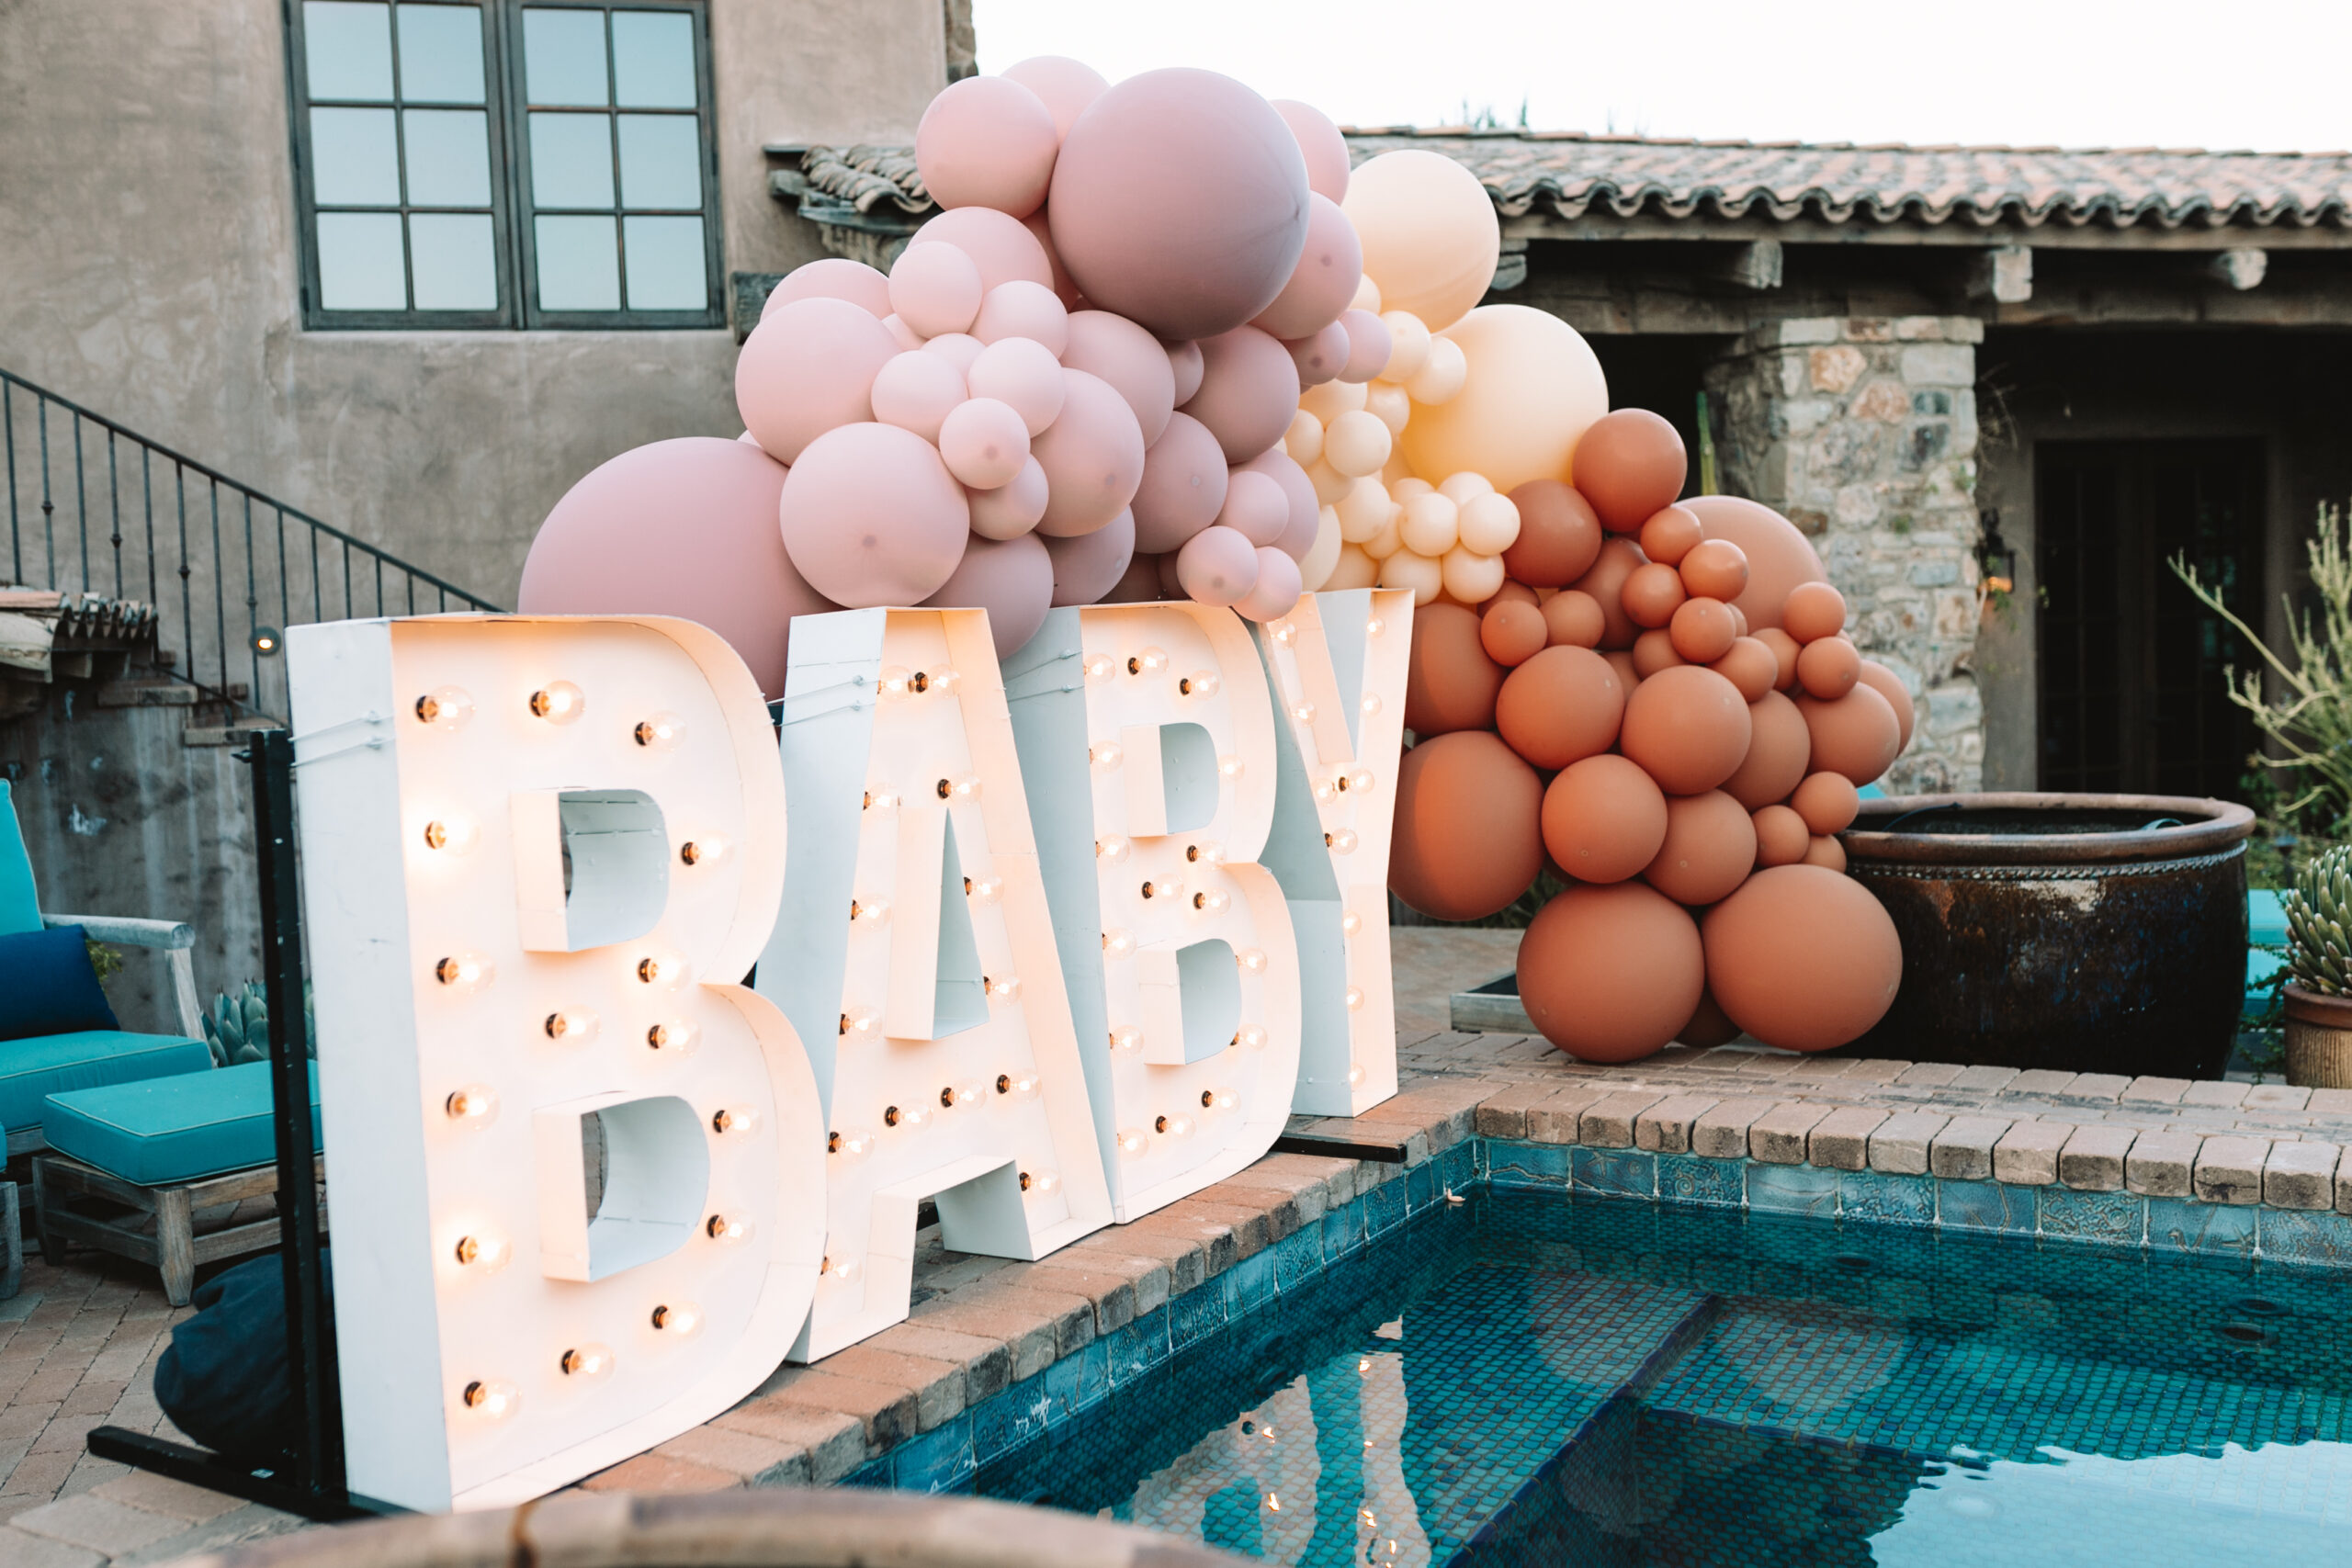 obsessed with these light up letters by Alpha Lit Phoenix with the balloon garland #lightupletters #bubblehustle #alphalit #babyshowerideas